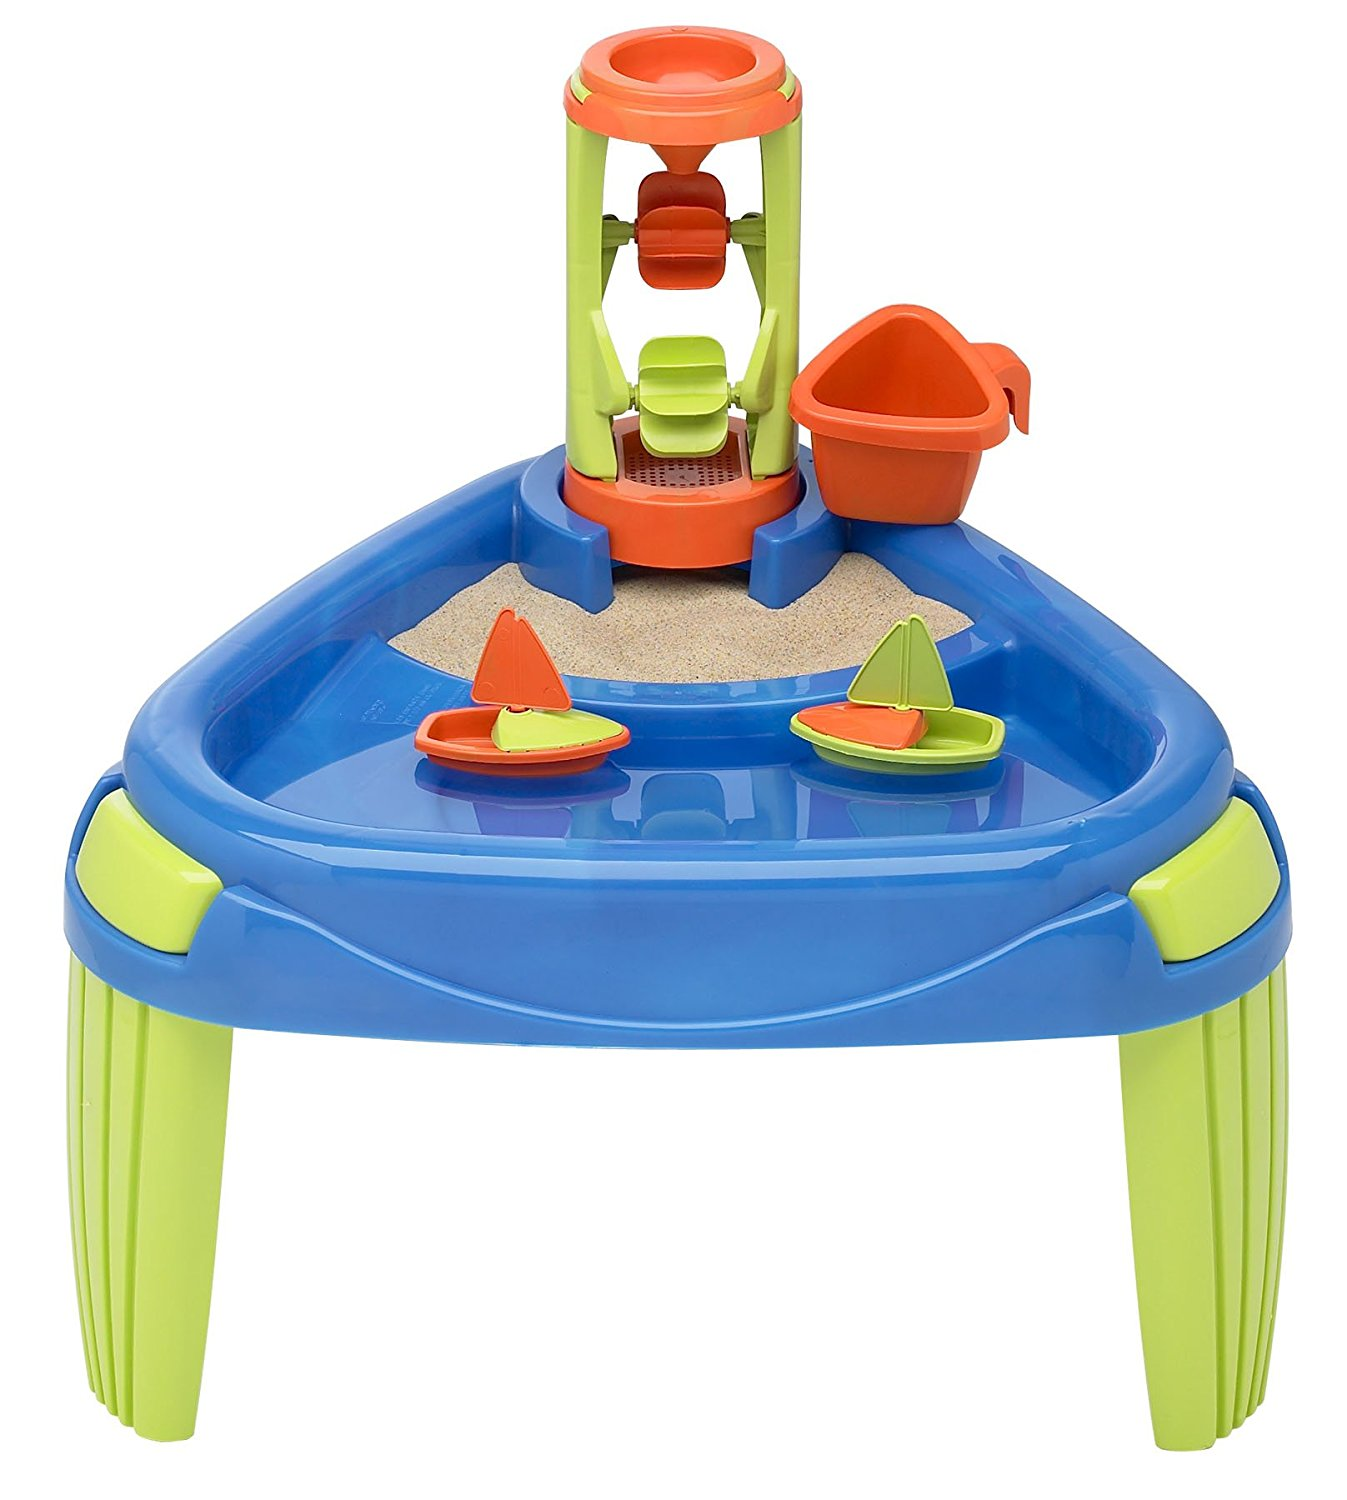 Amazon.com: American Plastic Toy Water Wheel Play Table: Toys & Games